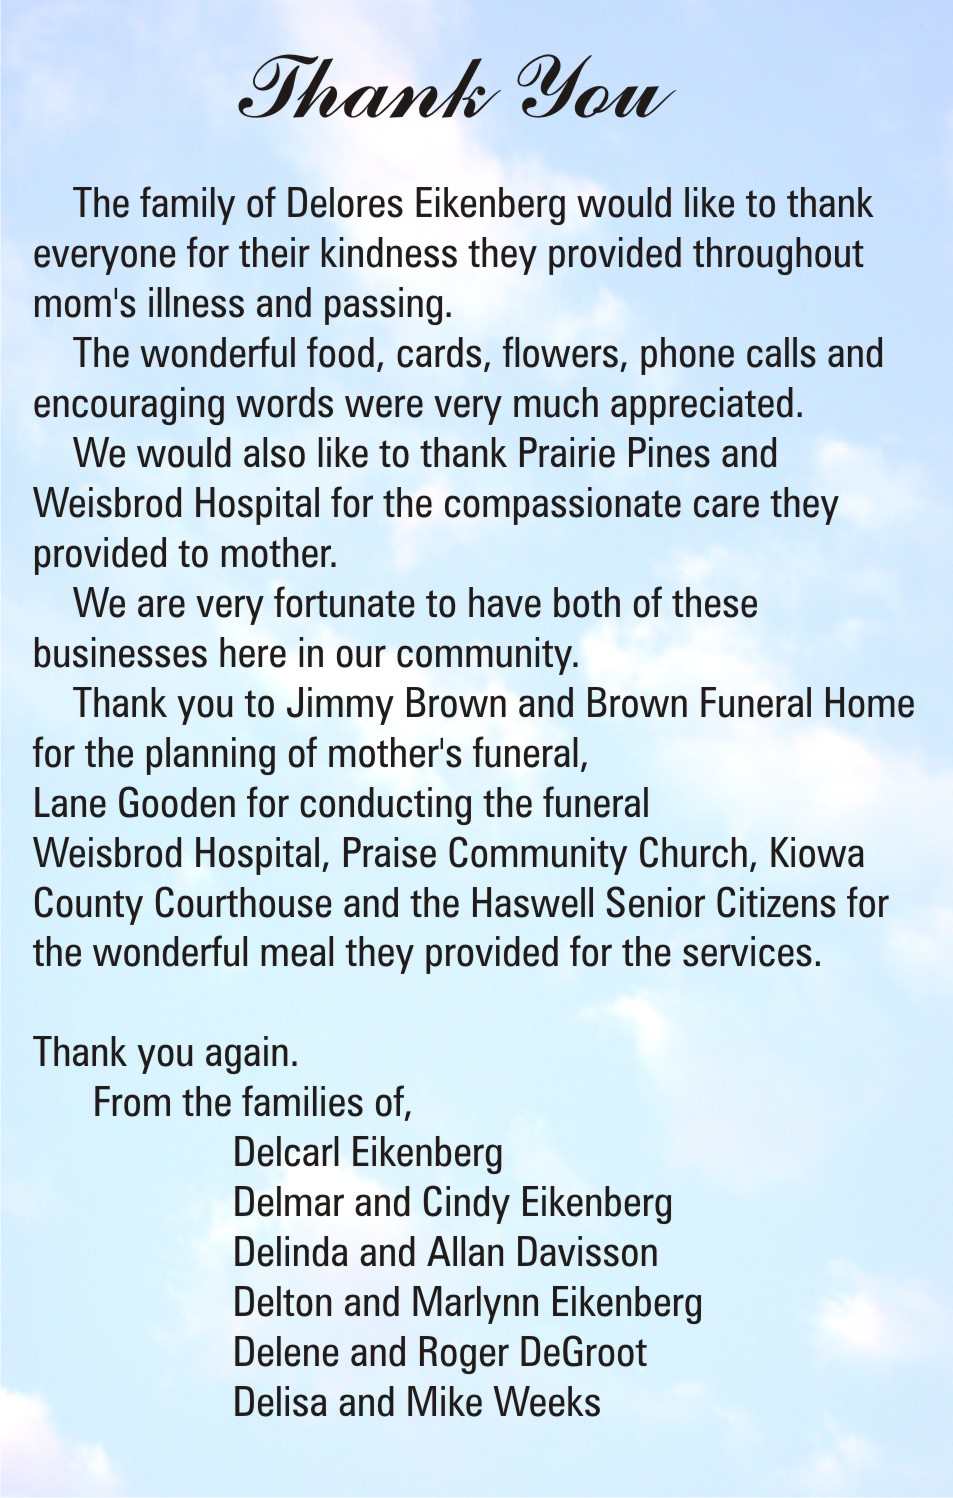 COT Card of Thanks - Eikenberg Families